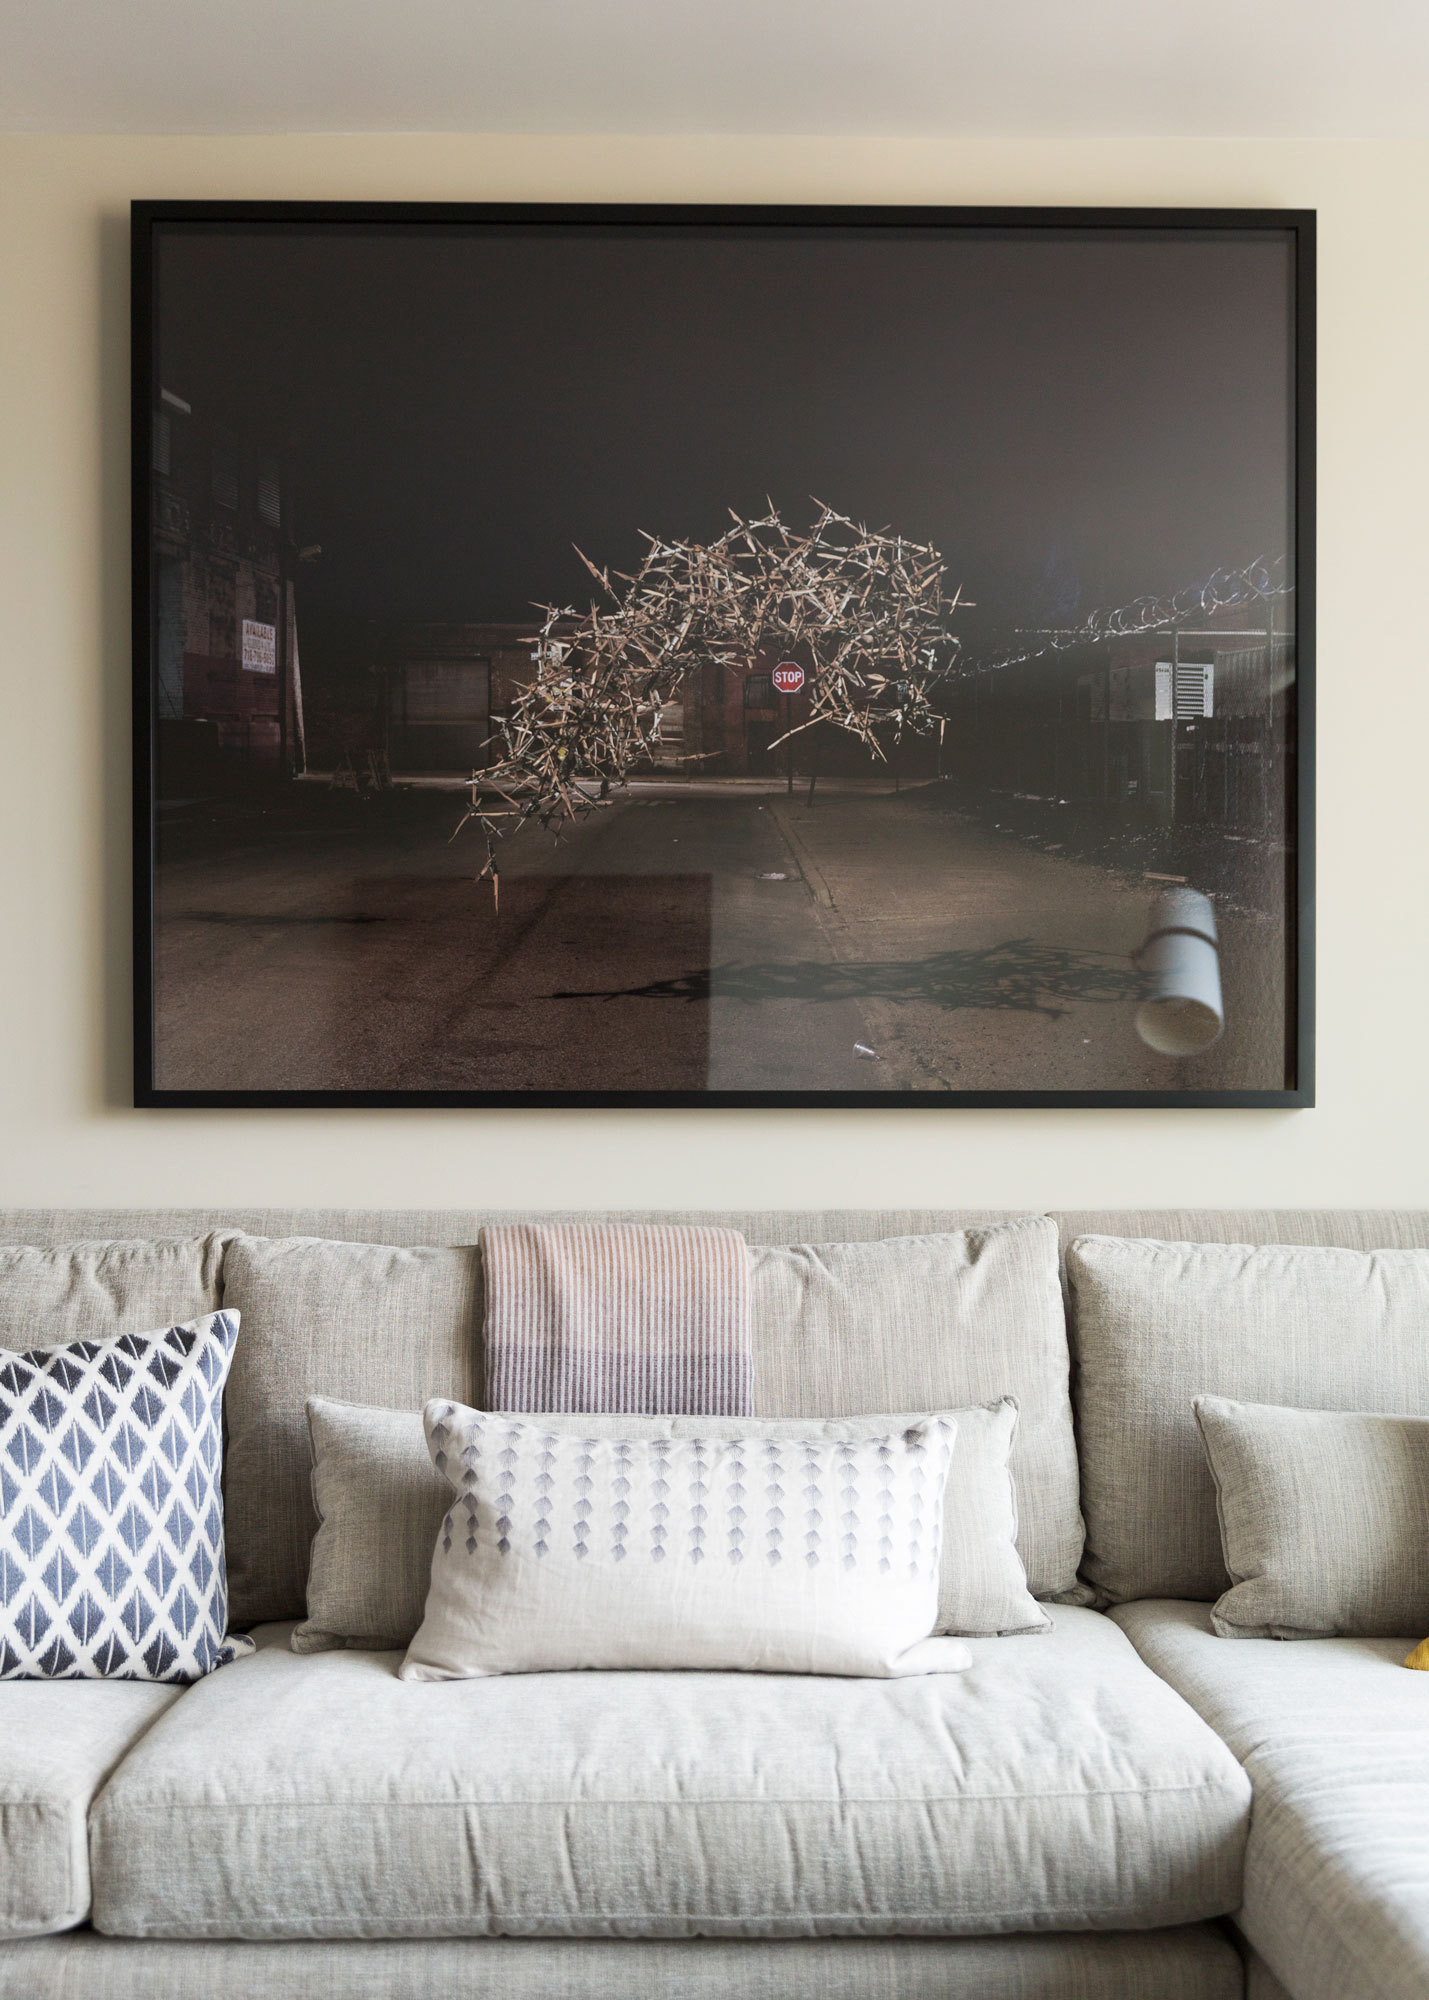 A moody, large-scale image above the sectional.